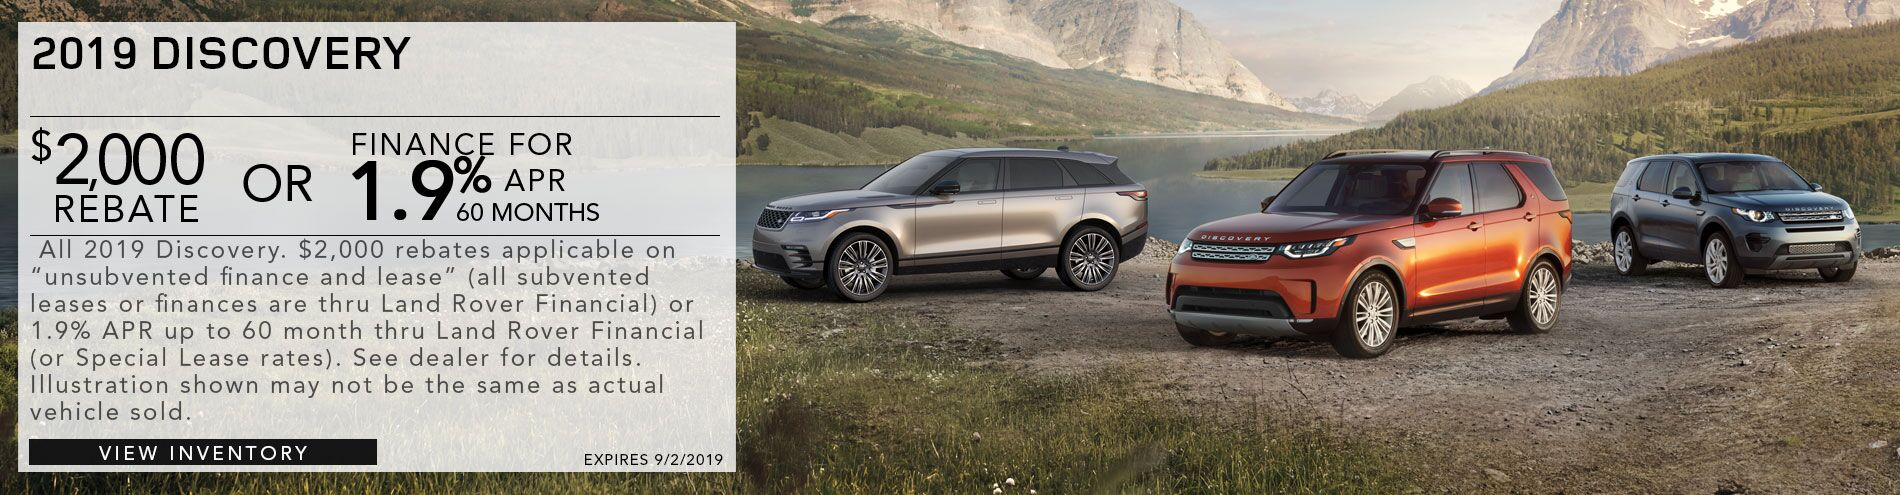 Range Rover Dealers In Ma >> Land Rover Pasadena New And Used Car Dealer In Los Angeles County